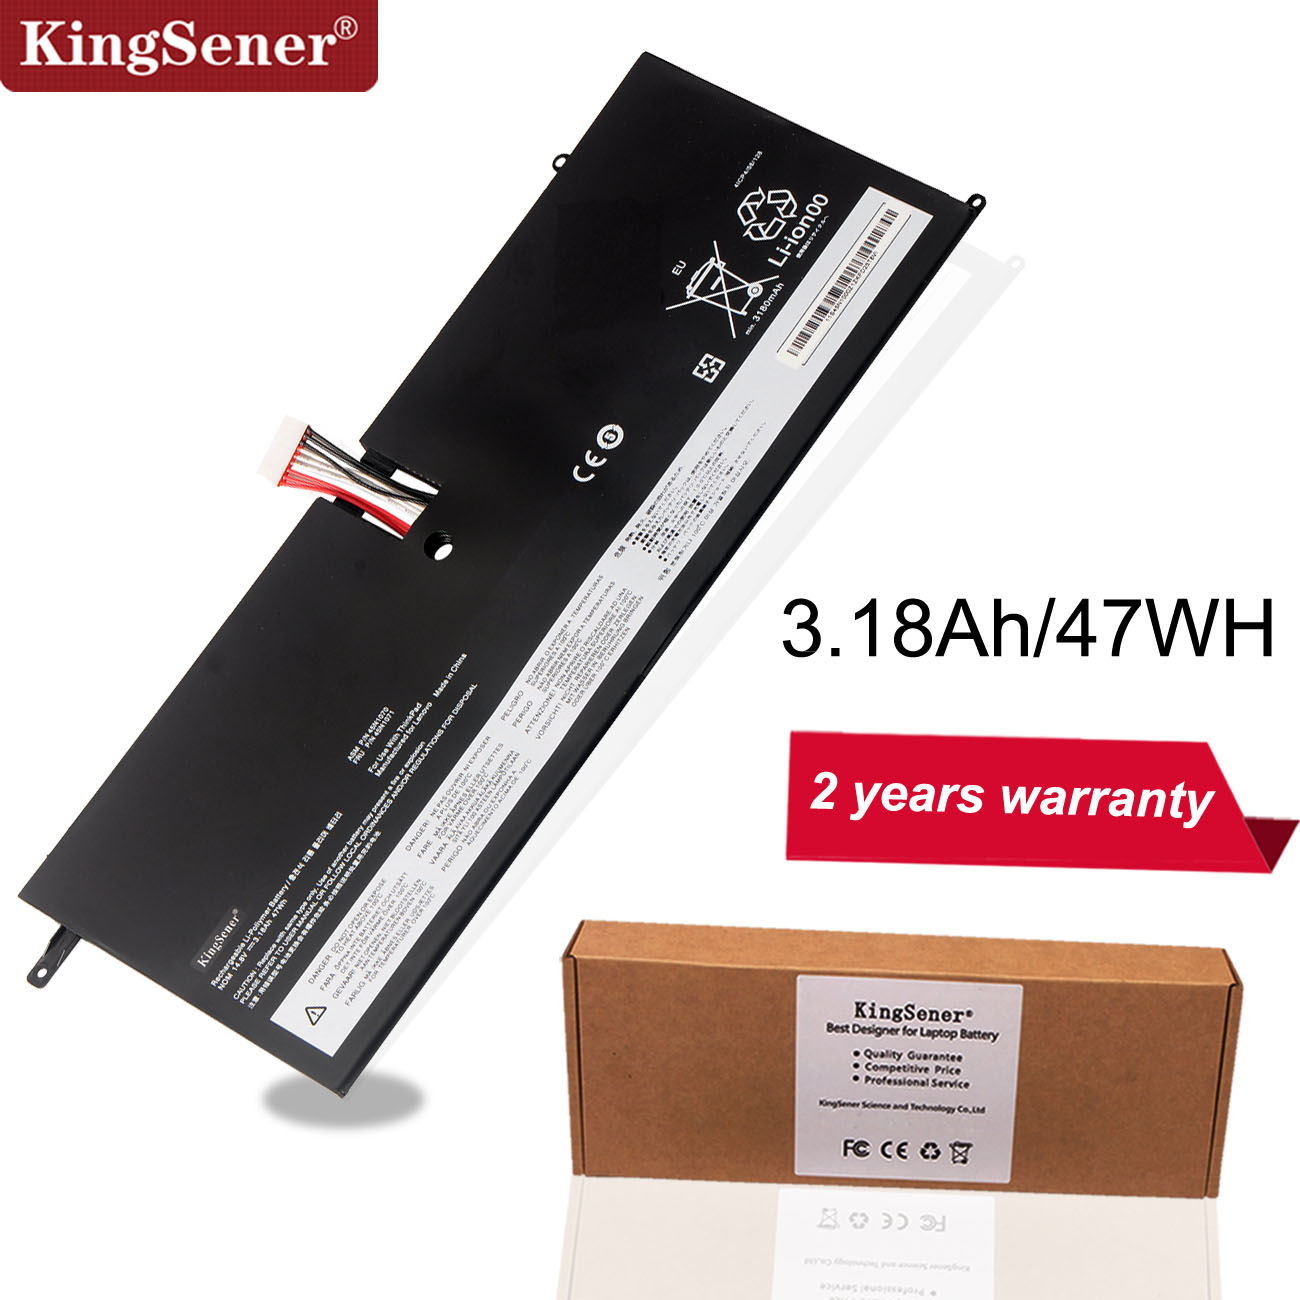 KingSener 45N1070 45N1071 Laptop Battery For Lenovo ThinkPad X1 Carbon Series 3444 3448 3460 Tablet 14.8V 3.18Ah 47WH